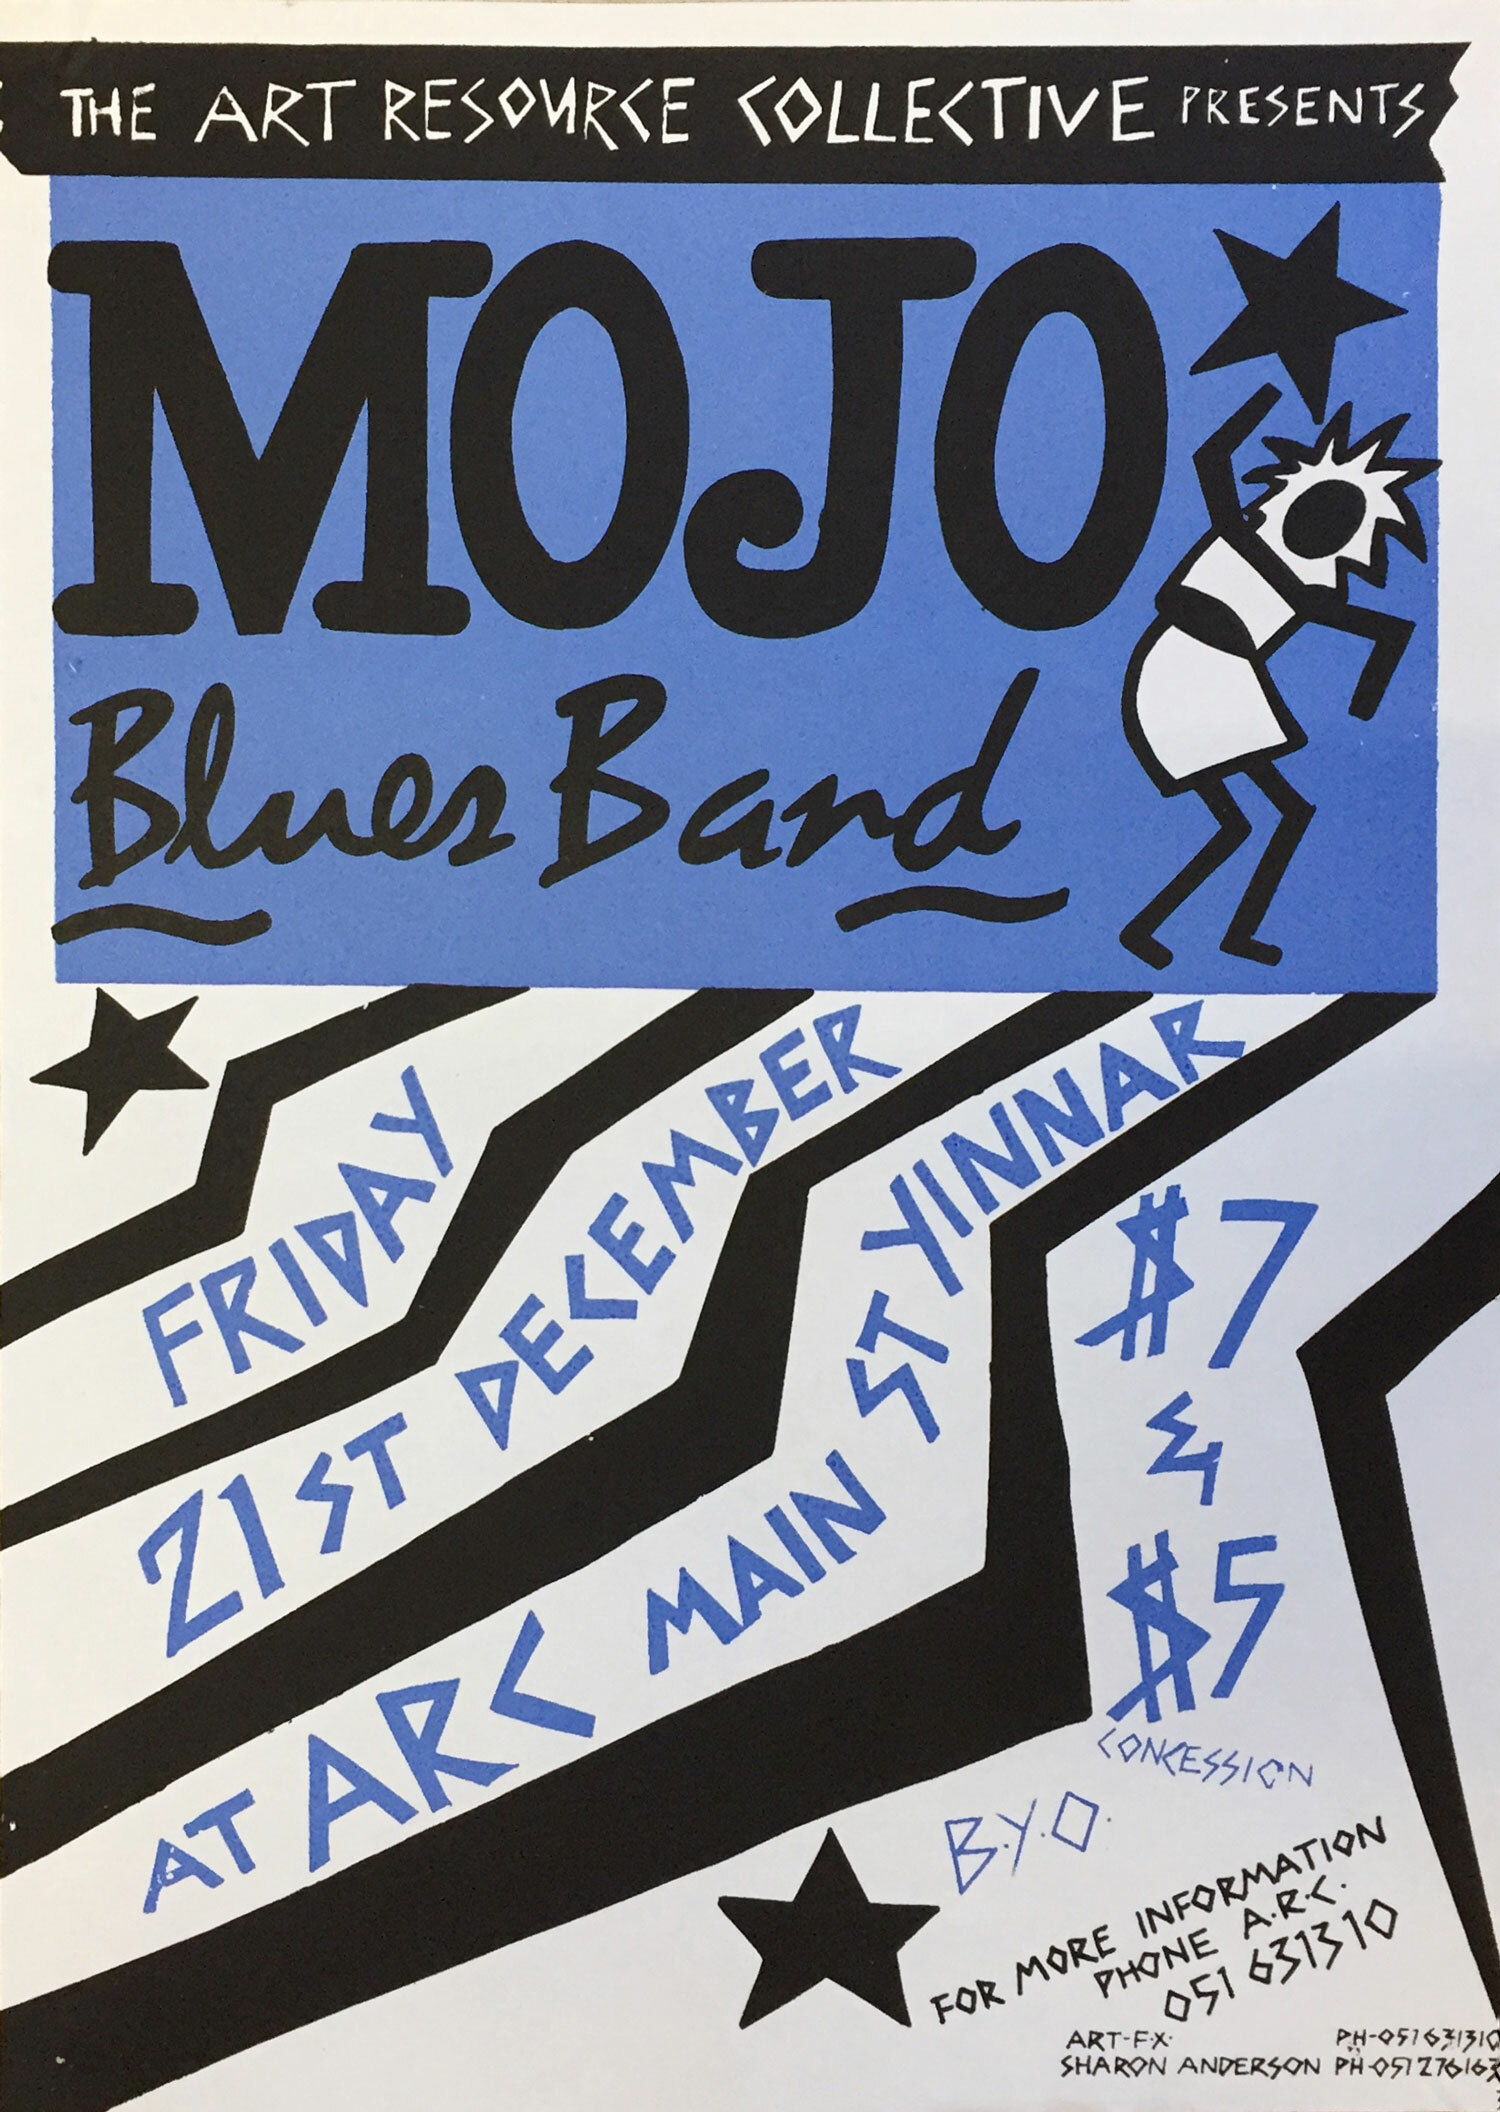 Mojo Blues Band / A3 on Cartridge Paper - arc was doing great things in the music scene. I think the Switchroom was just coming into being and arc was supporting lots of acts, both locally and wider afield. I didn't know much about Mojo, but I was somehow inspired to create this poster. Definitely a 90s poster.